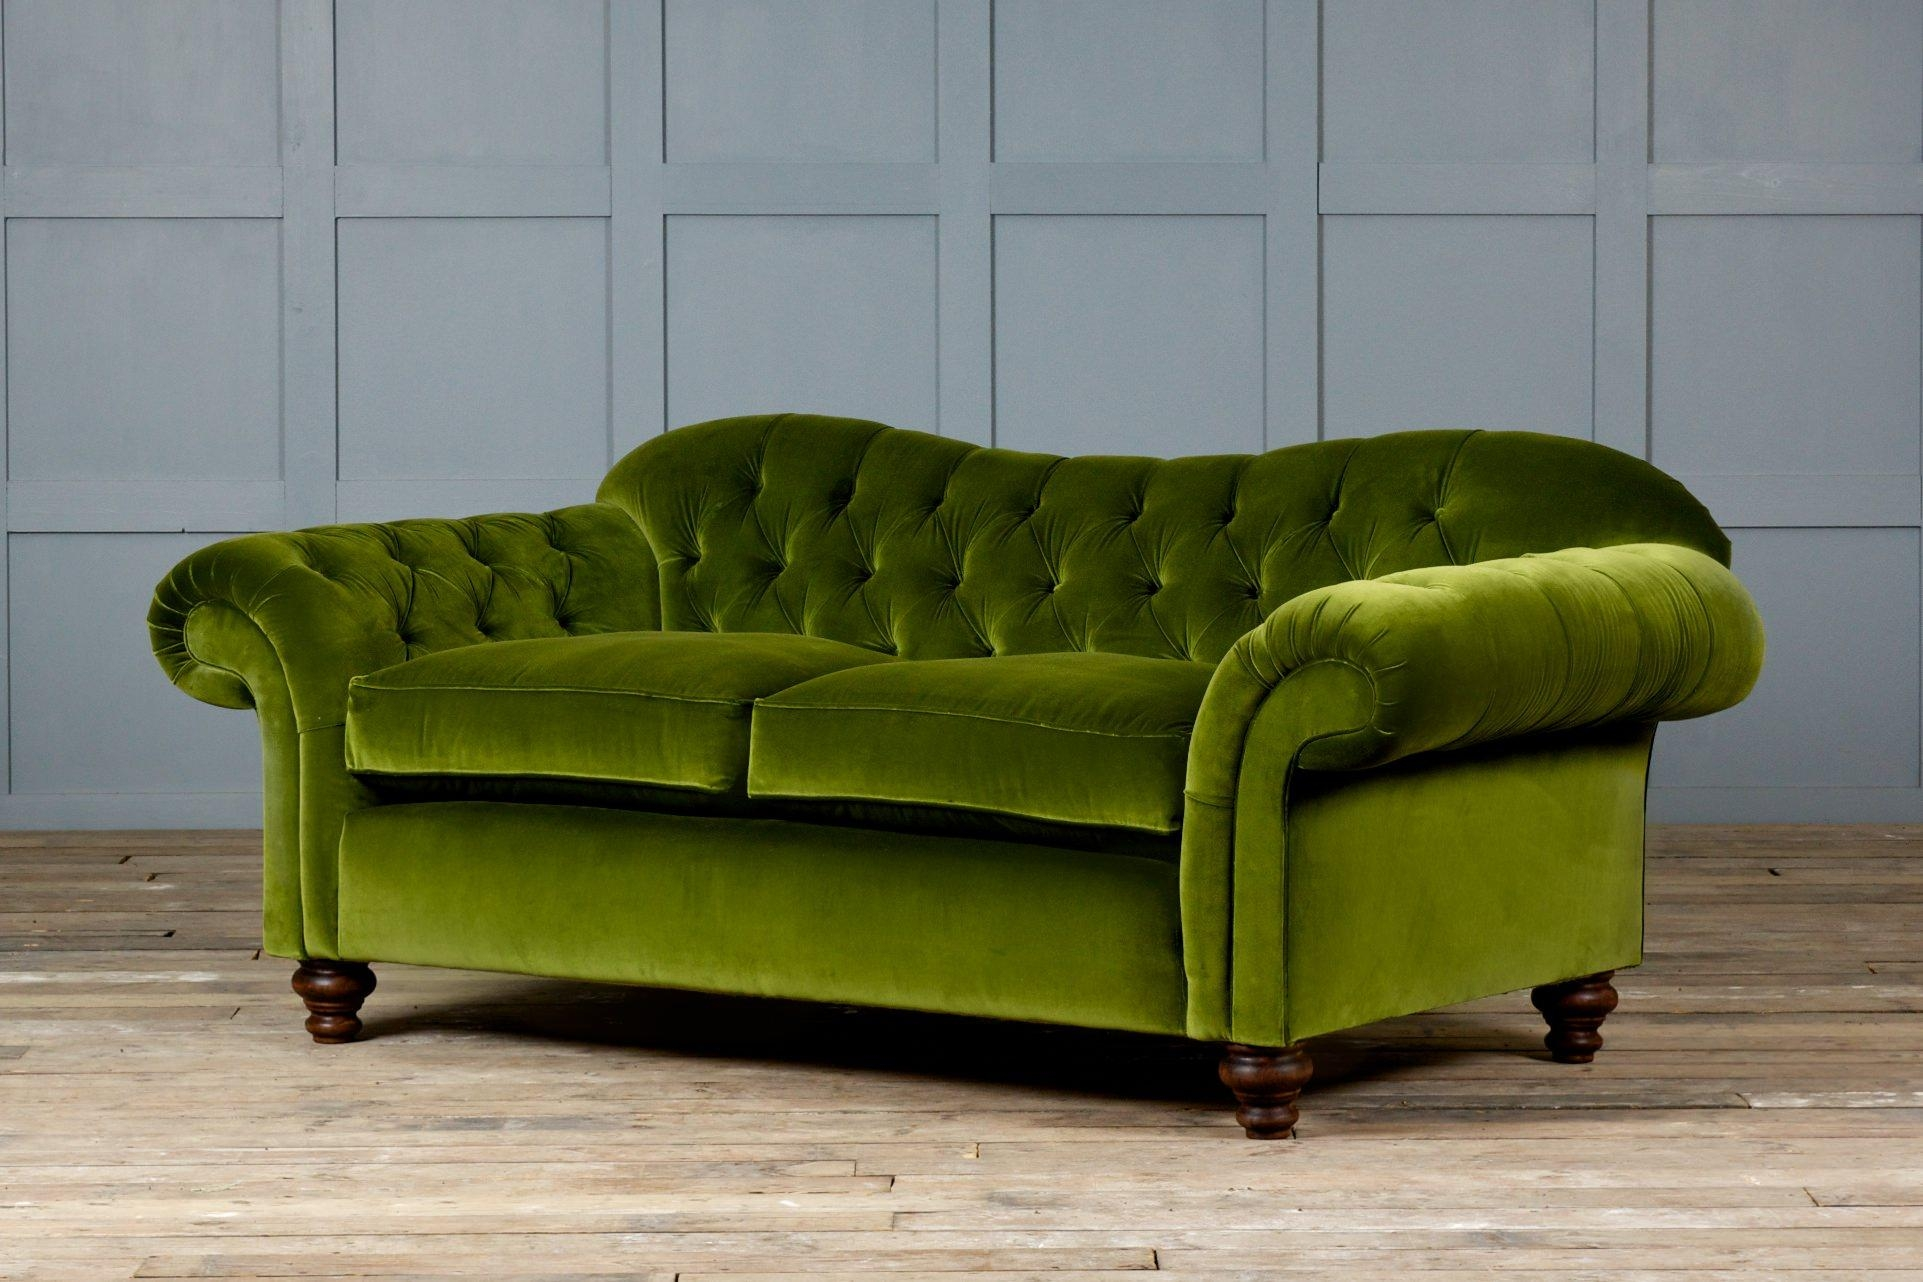 Sofas Center : Vintager Sofa Trend With Additional Room Ideas Inside Sofa Trend (Image 13 of 20)